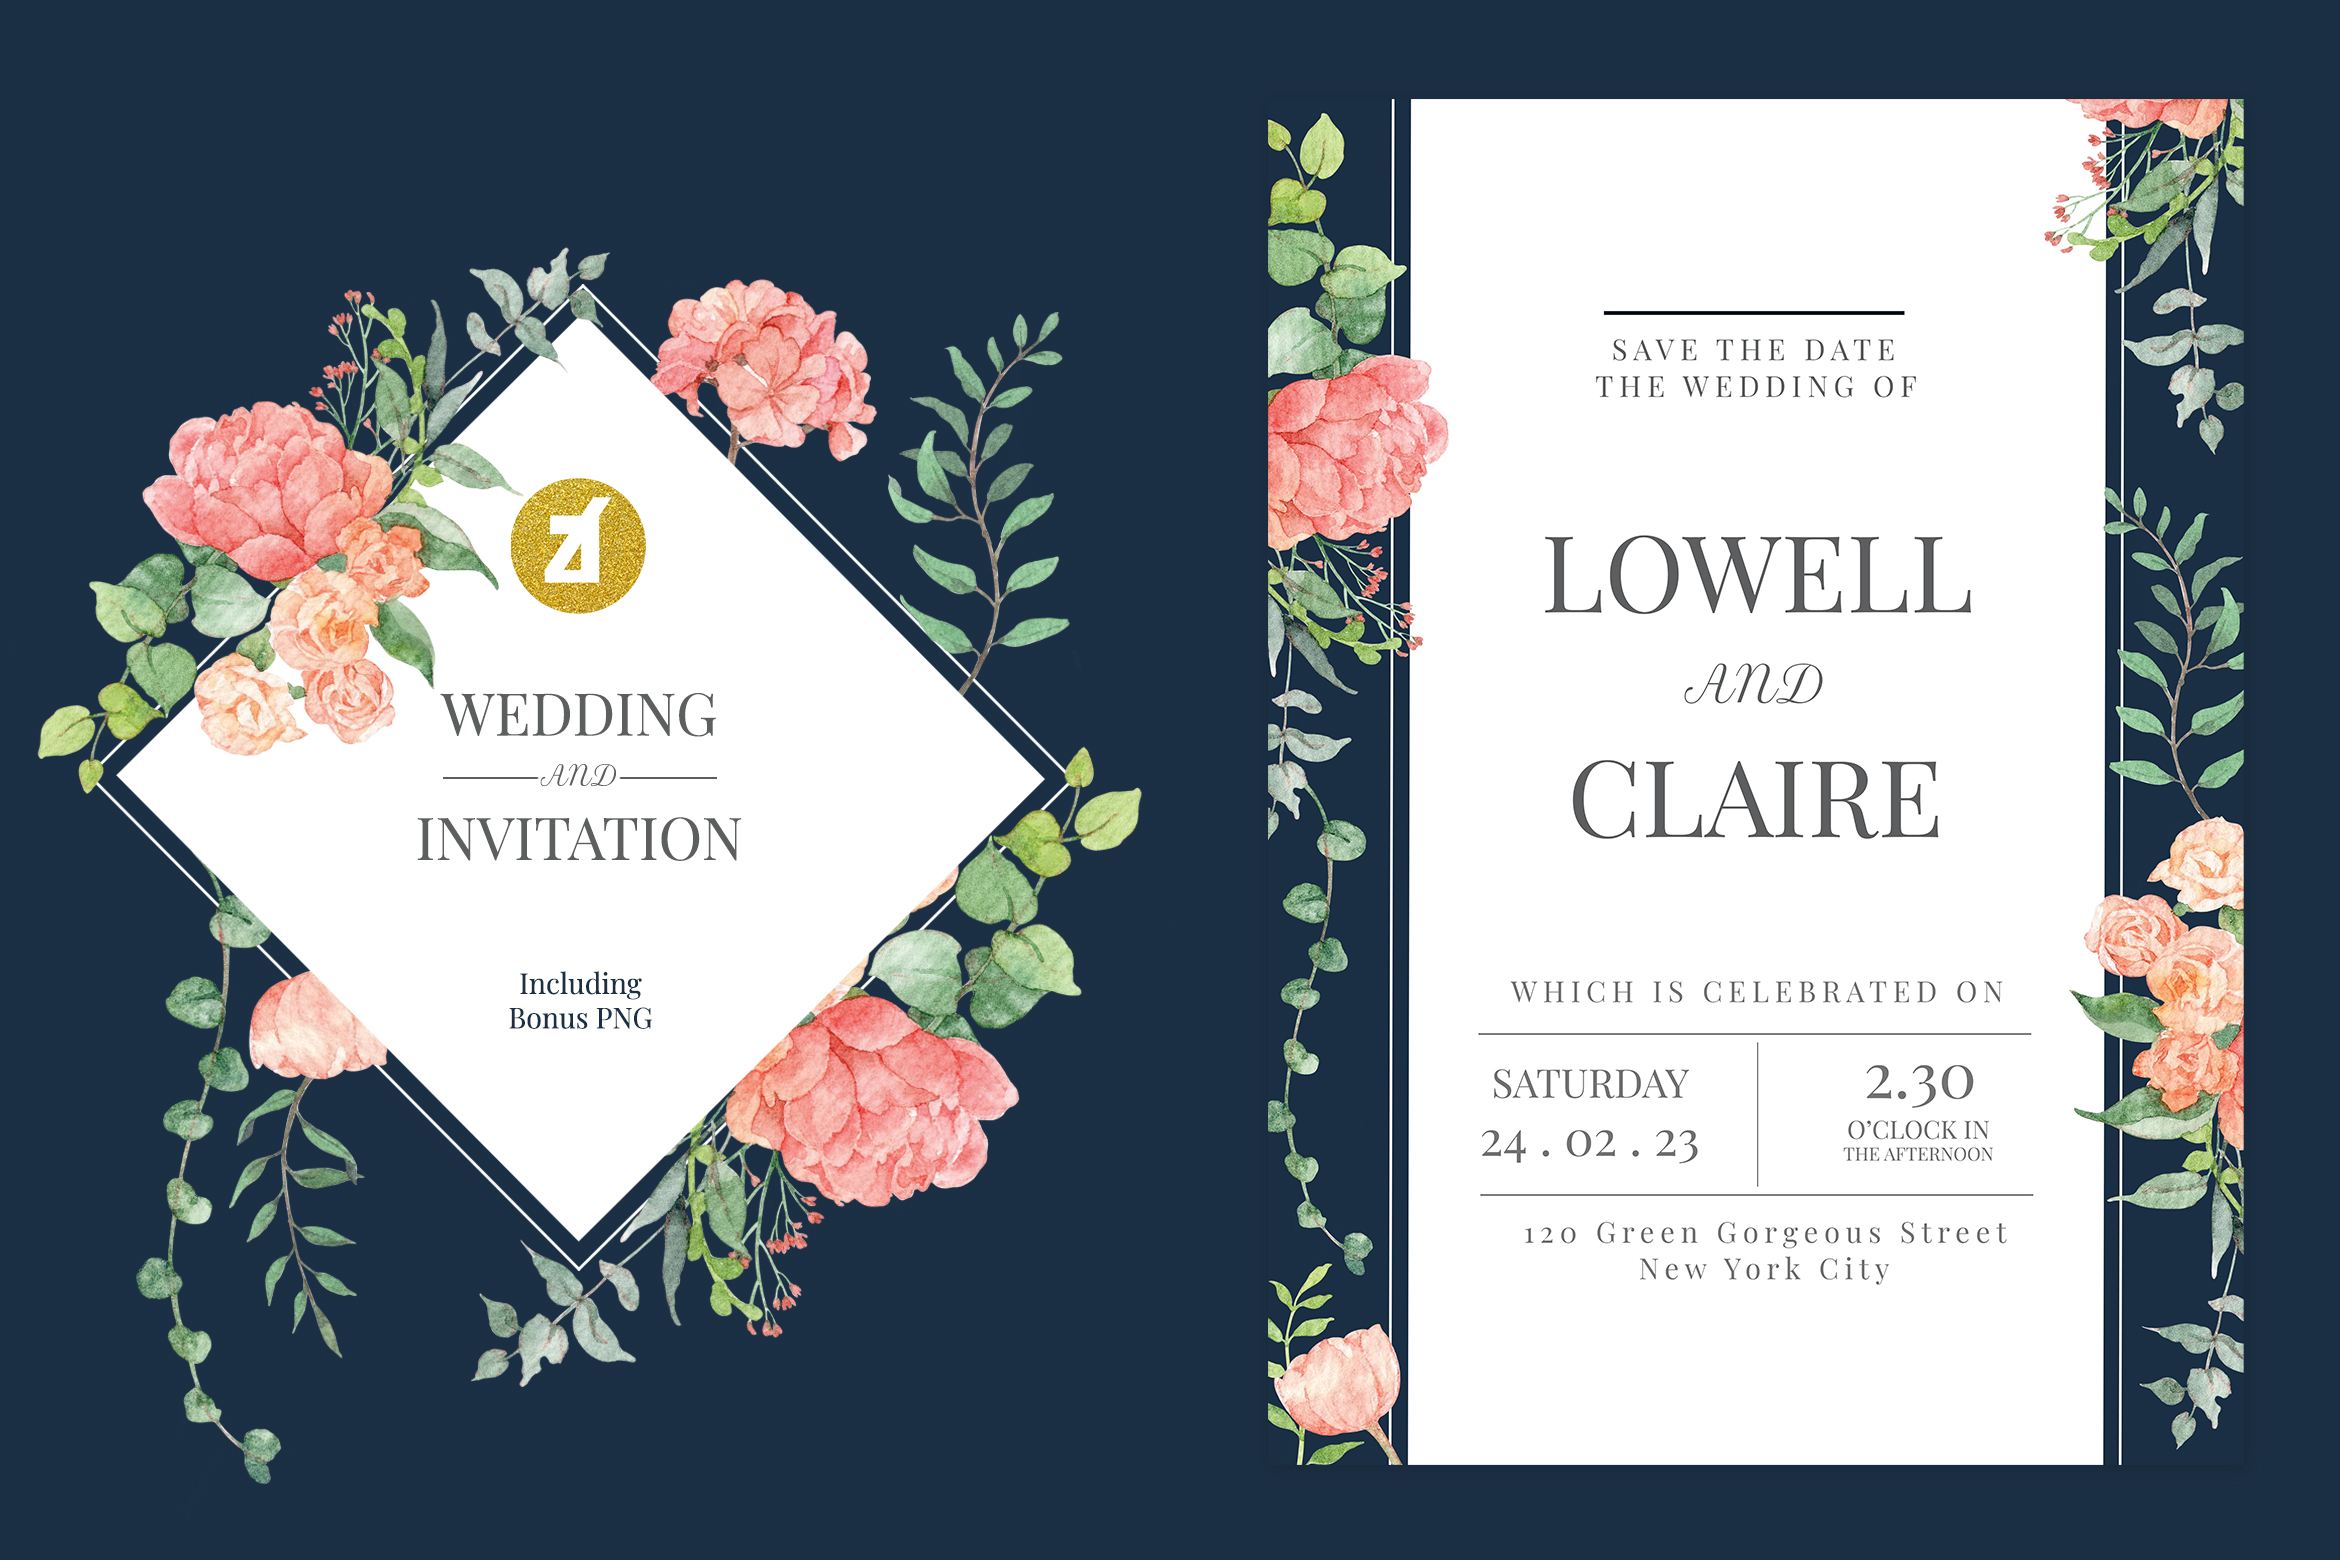 Free Invitation Svg Cut Files Free Svg Cut Files Create Your Diy Projects Using Your Cricut Explore Silhouette And More The Free Cut Files Include Svg Dxf Eps And Png Files